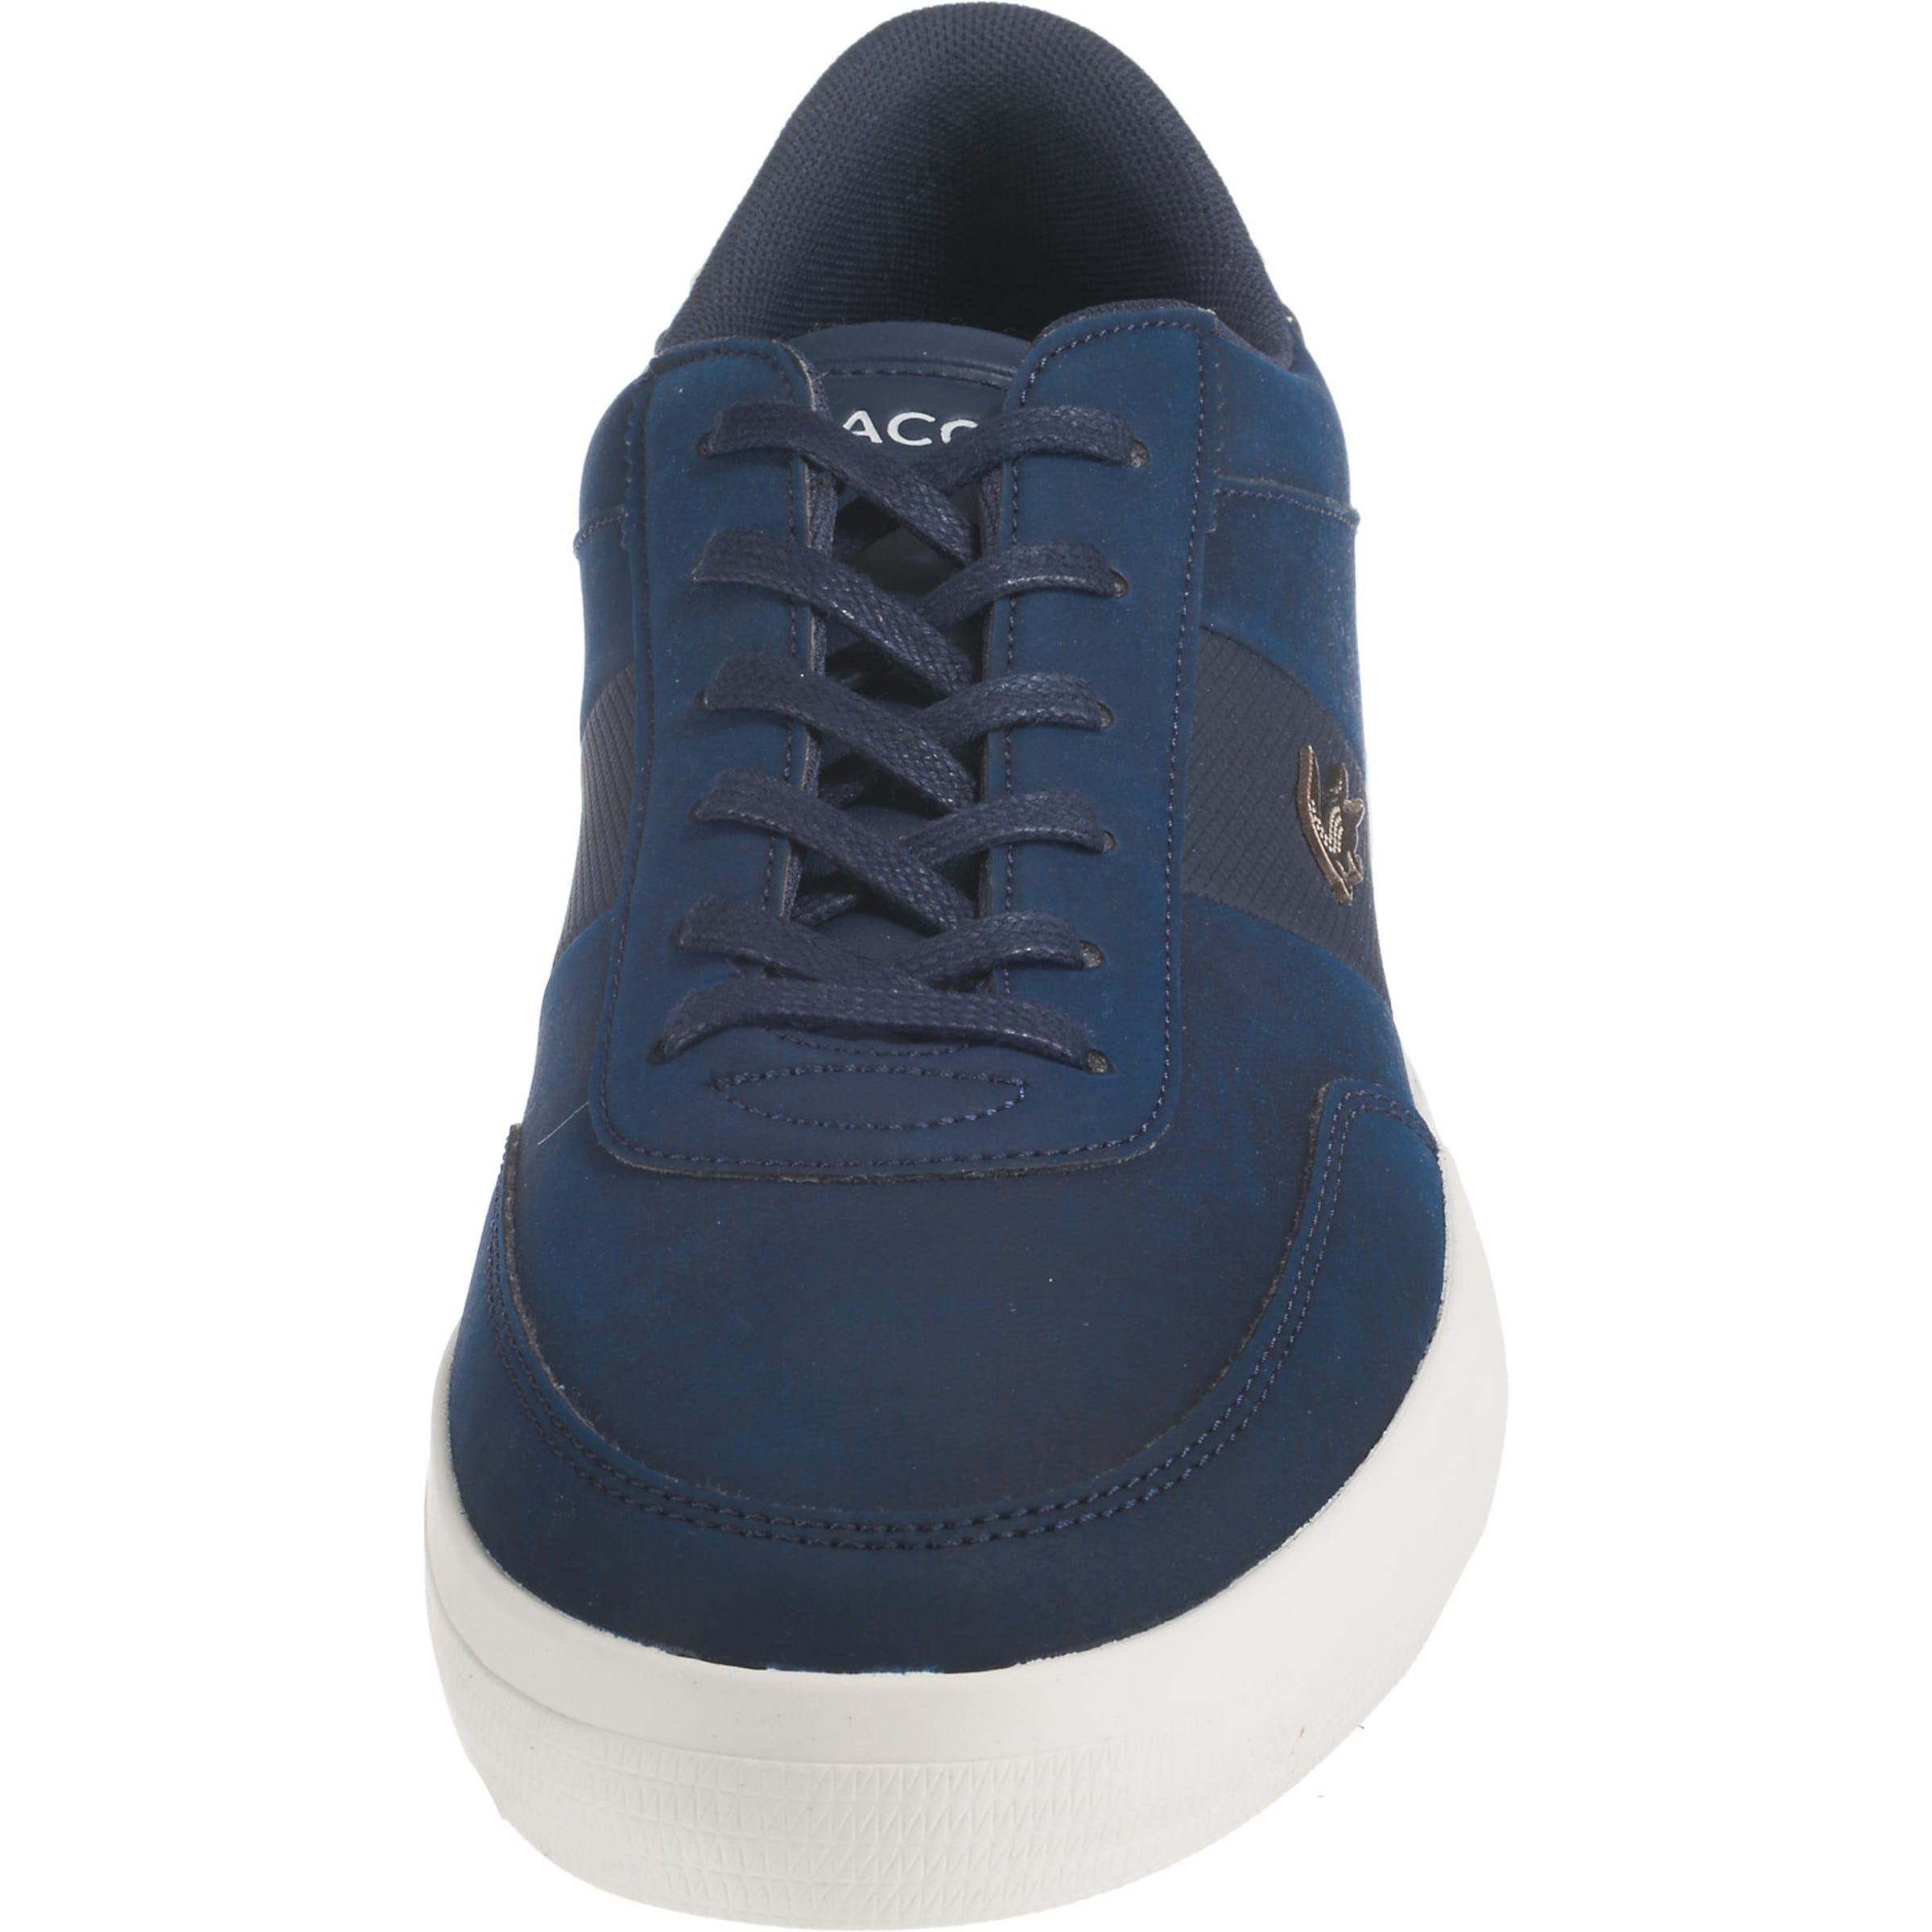 119 master 'court Lacoste Cma' NavyWeiß In Sneaker 3 wXNnk80OP